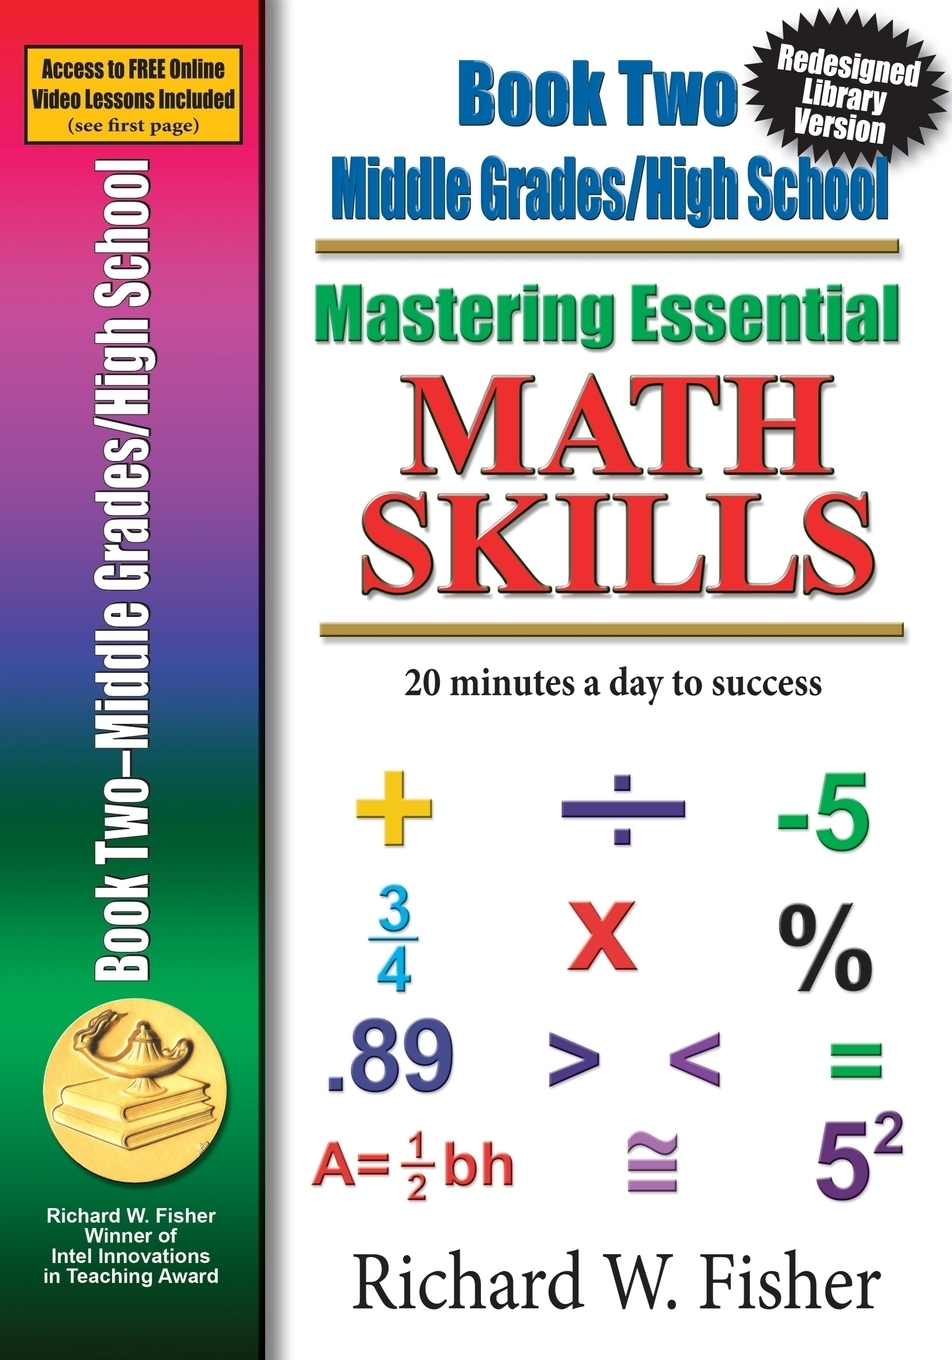 Richard W Fisher Mastering Essential Math Skills, Book 2, Middle Grades/High School. Re-designed Library Version